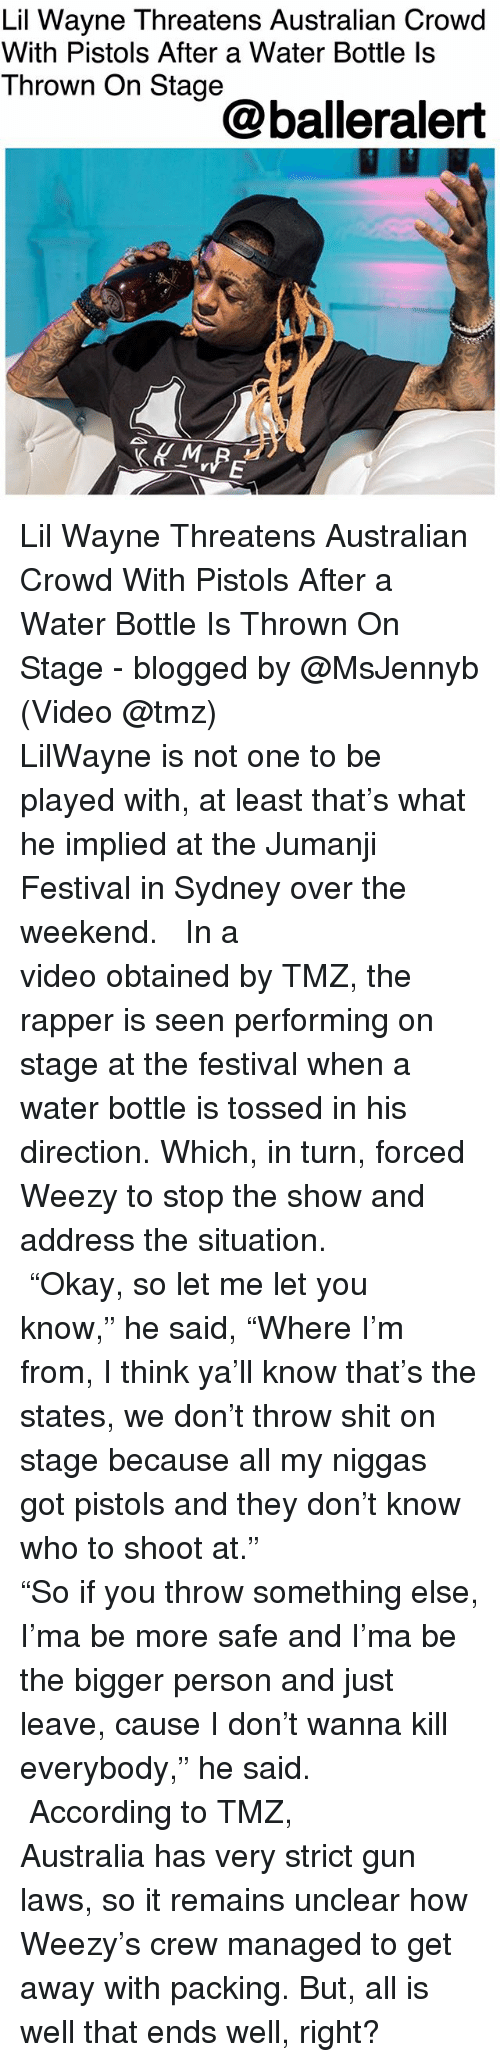 """my niggas: Lil Wayne Threatens Australian Crowd  With Pistols After a Water Bottle ls  Thrown On Stage  @balleralert Lil Wayne Threatens Australian Crowd With Pistols After a Water Bottle Is Thrown On Stage - blogged by @MsJennyb (Video @tmz) ⠀⠀⠀⠀⠀⠀⠀⠀⠀ ⠀⠀⠀⠀⠀⠀⠀⠀⠀ LilWayne is not one to be played with, at least that's what he implied at the Jumanji Festival in Sydney over the weekend. ⠀⠀⠀⠀⠀⠀⠀⠀⠀ ⠀⠀⠀⠀⠀⠀⠀⠀⠀ In a video obtained by TMZ, the rapper is seen performing on stage at the festival when a water bottle is tossed in his direction. Which, in turn, forced Weezy to stop the show and address the situation. ⠀⠀⠀⠀⠀⠀⠀⠀⠀ ⠀⠀⠀⠀⠀⠀⠀⠀⠀ """"Okay, so let me let you know,"""" he said, """"Where I'm from, I think ya'll know that's the states, we don't throw shit on stage because all my niggas got pistols and they don't know who to shoot at."""" ⠀⠀⠀⠀⠀⠀⠀⠀⠀ ⠀⠀⠀⠀⠀⠀⠀⠀⠀ """"So if you throw something else, I'ma be more safe and I'ma be the bigger person and just leave, cause I don't wanna kill everybody,"""" he said. ⠀⠀⠀⠀⠀⠀⠀⠀⠀ ⠀⠀⠀⠀⠀⠀⠀⠀⠀ According to TMZ, Australia has very strict gun laws, so it remains unclear how Weezy's crew managed to get away with packing. But, all is well that ends well, right?"""